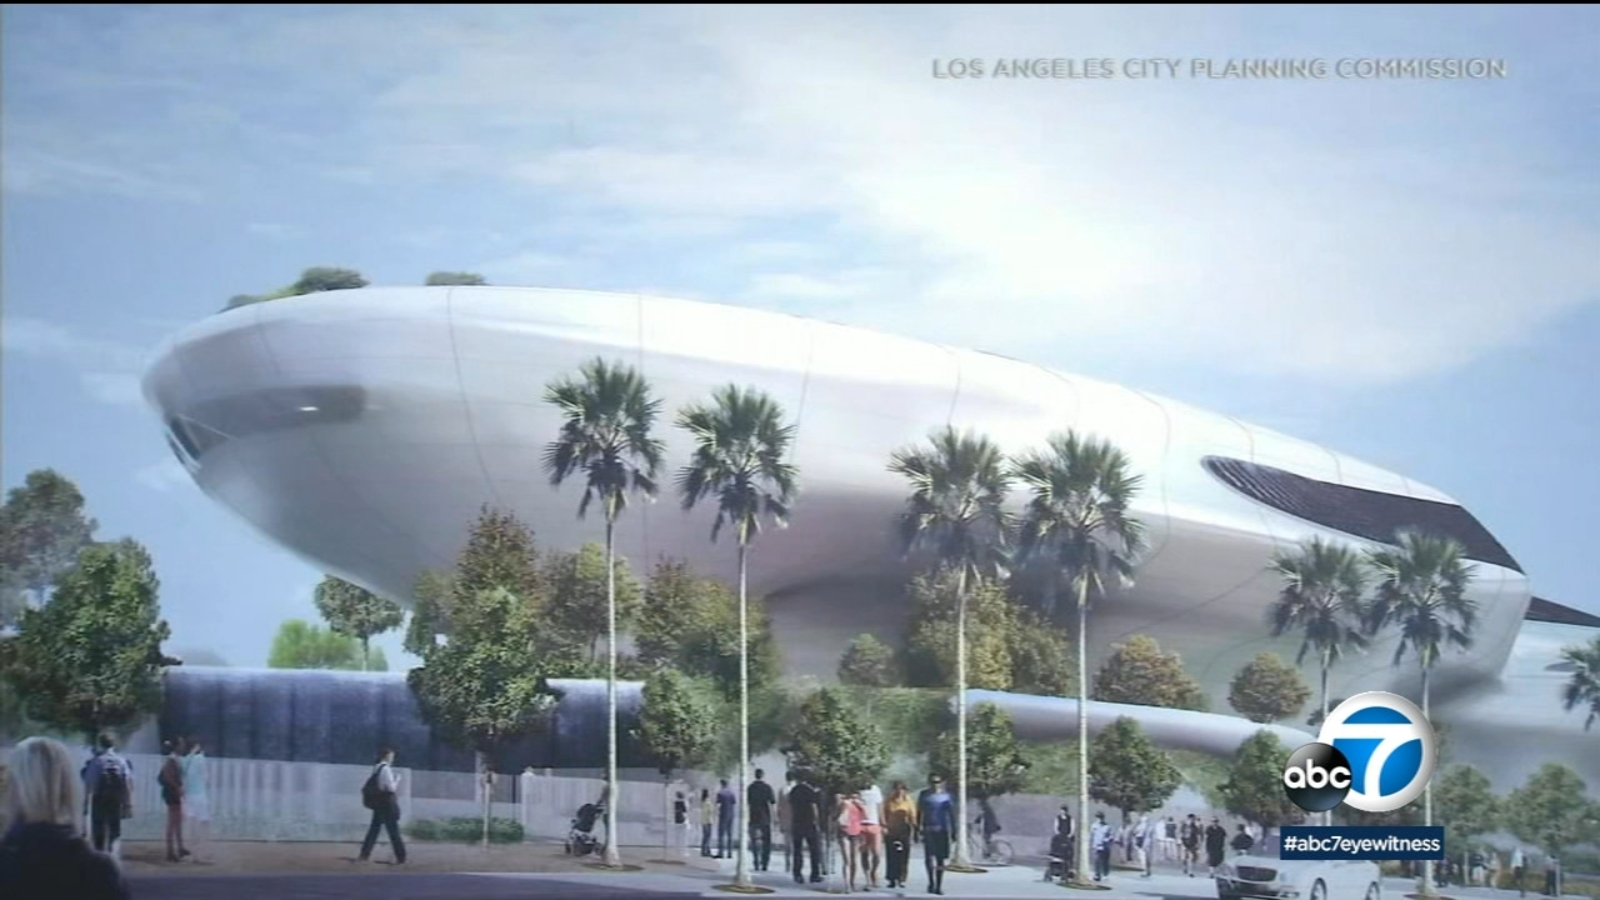 Construction continues on Lucas Museum of Narrative Art in Exposition Park